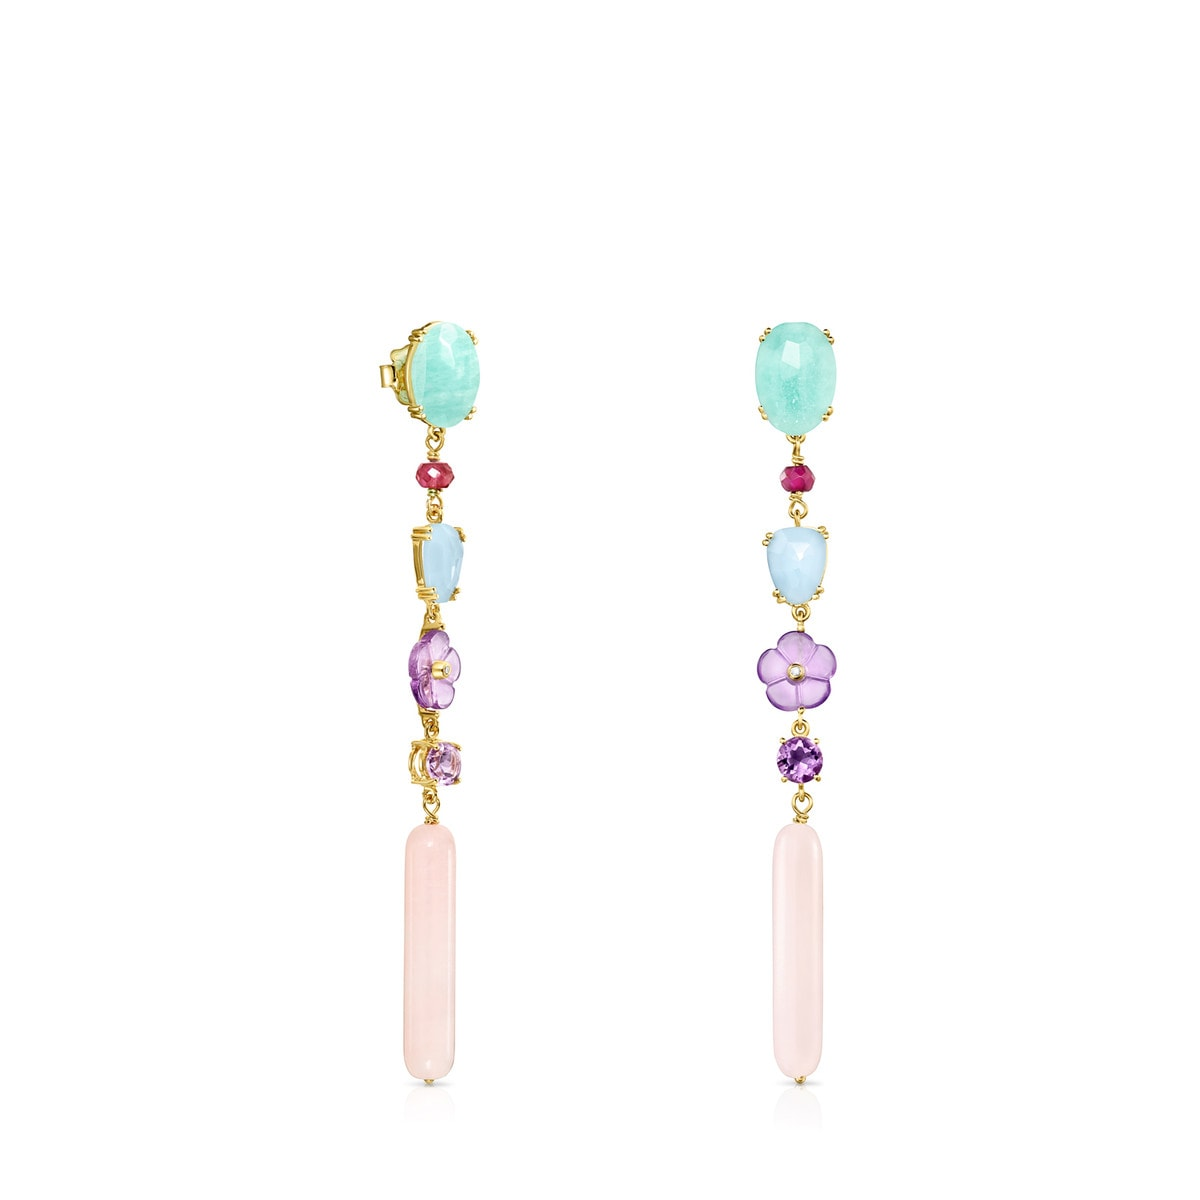 bd28e3b59c393c Long Vita earrings in Gold with Gemstones - Tous Site US